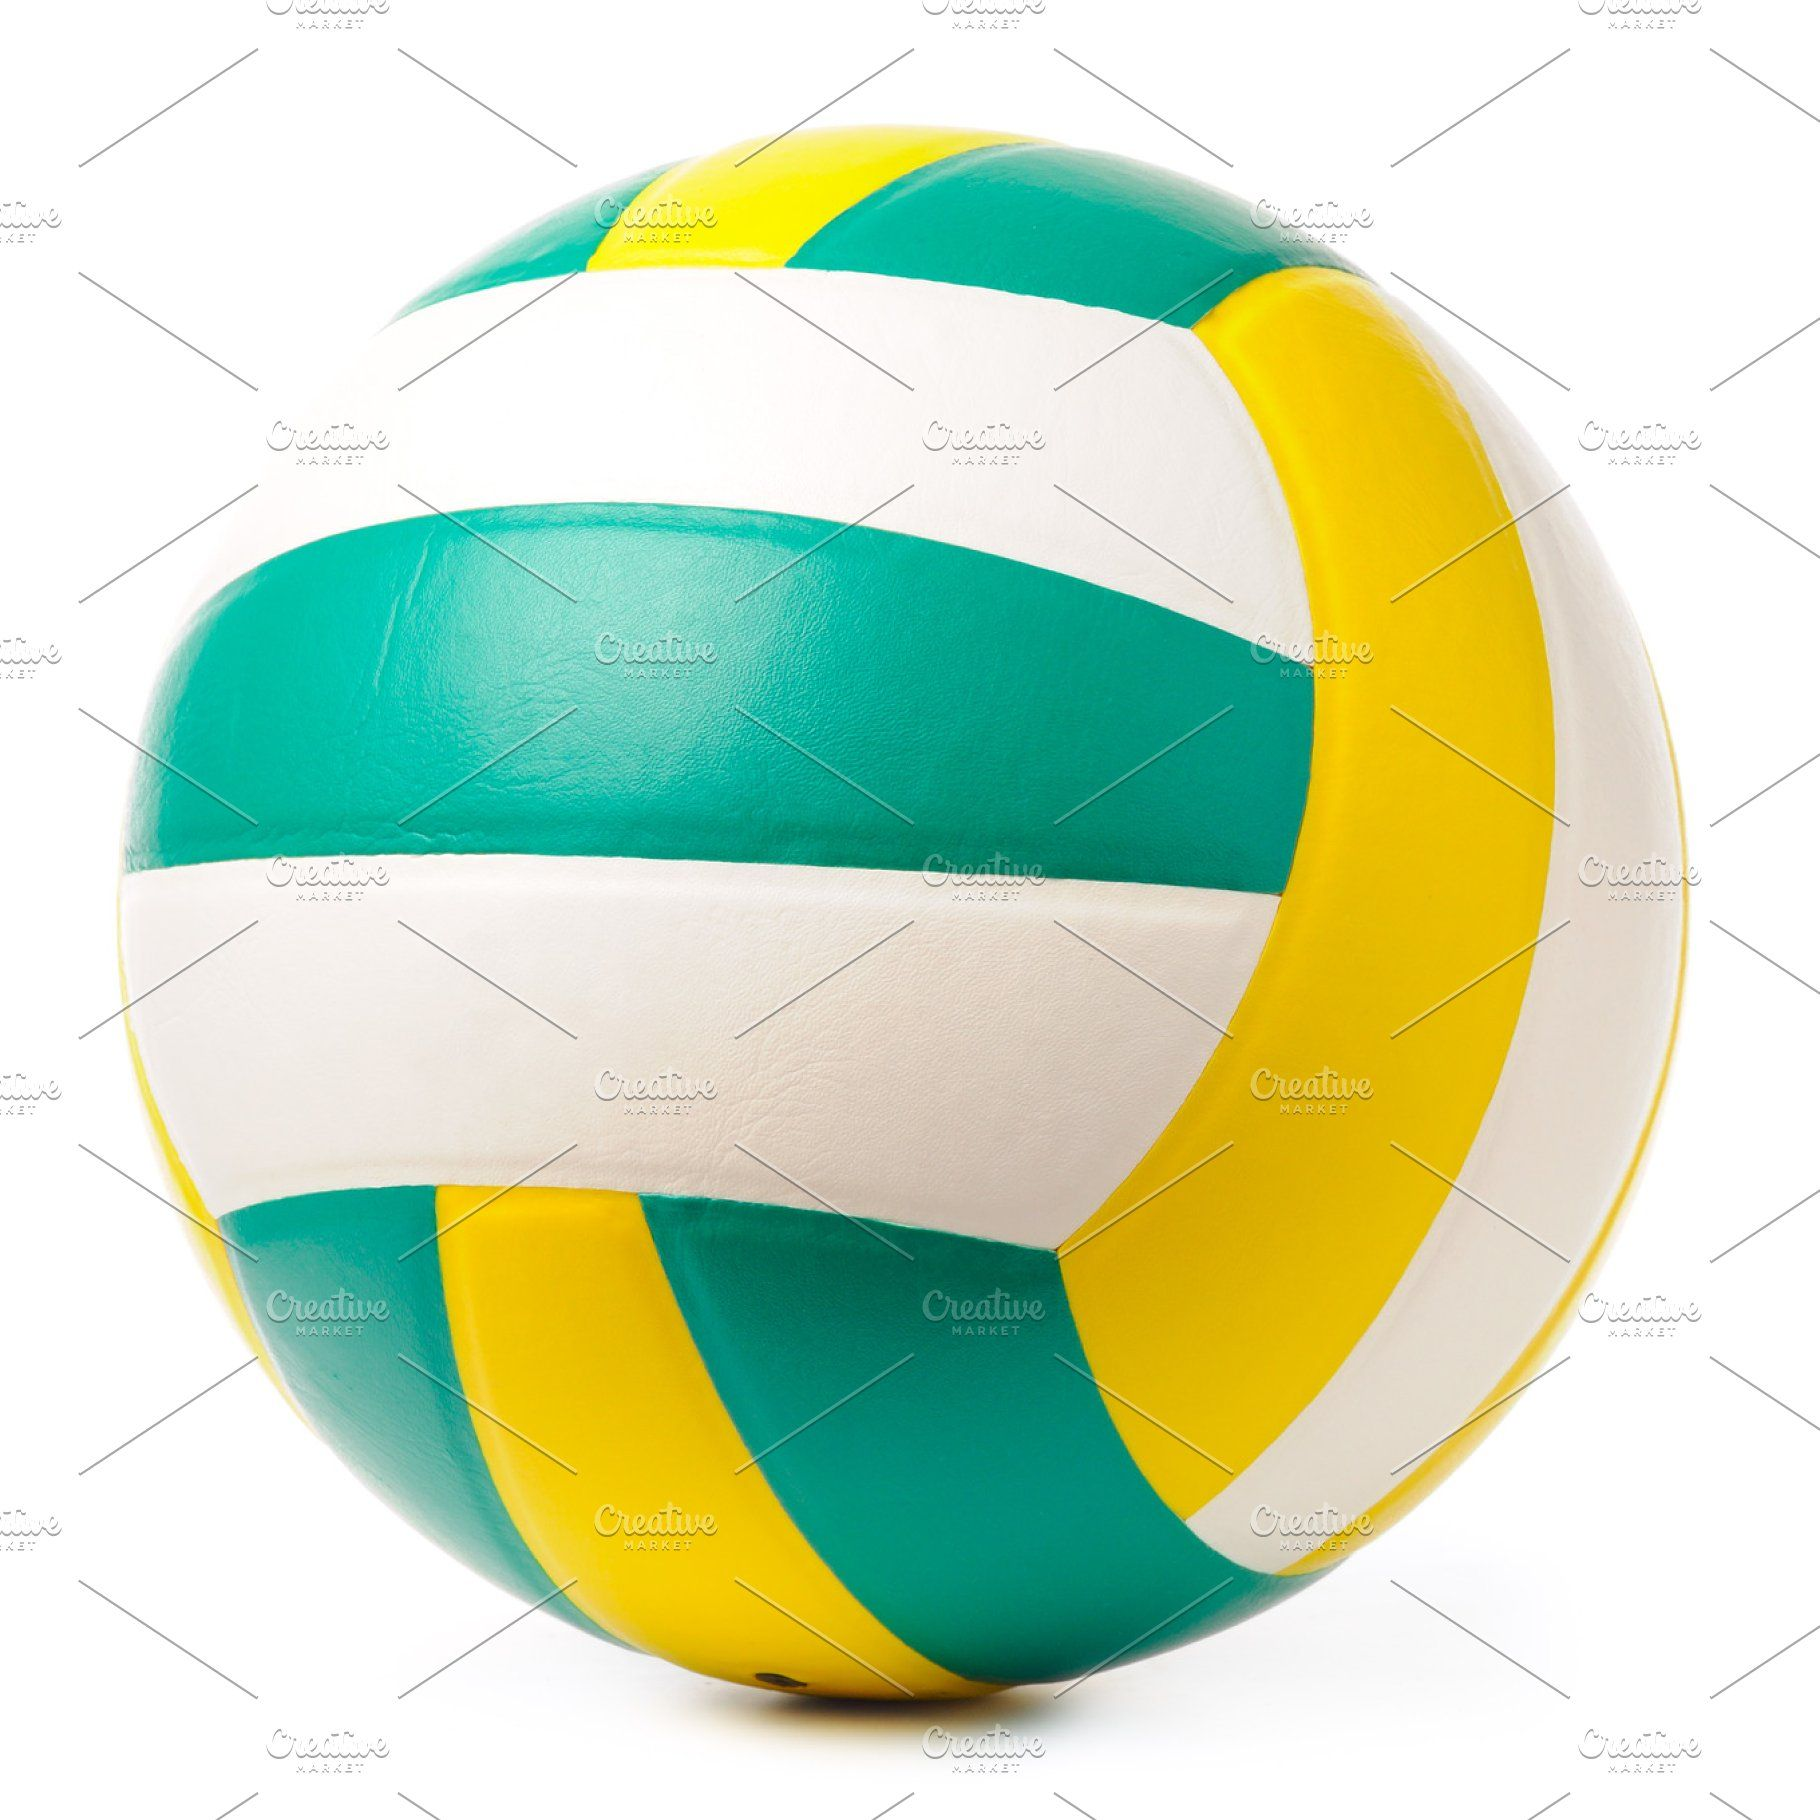 Ad Volleyball Ball Isolated On White By Sergeypeterman On Creativemarket Volleyball Ball Isolated On White Creati In 2020 Sports Photos Volleyball Sport Volleyball